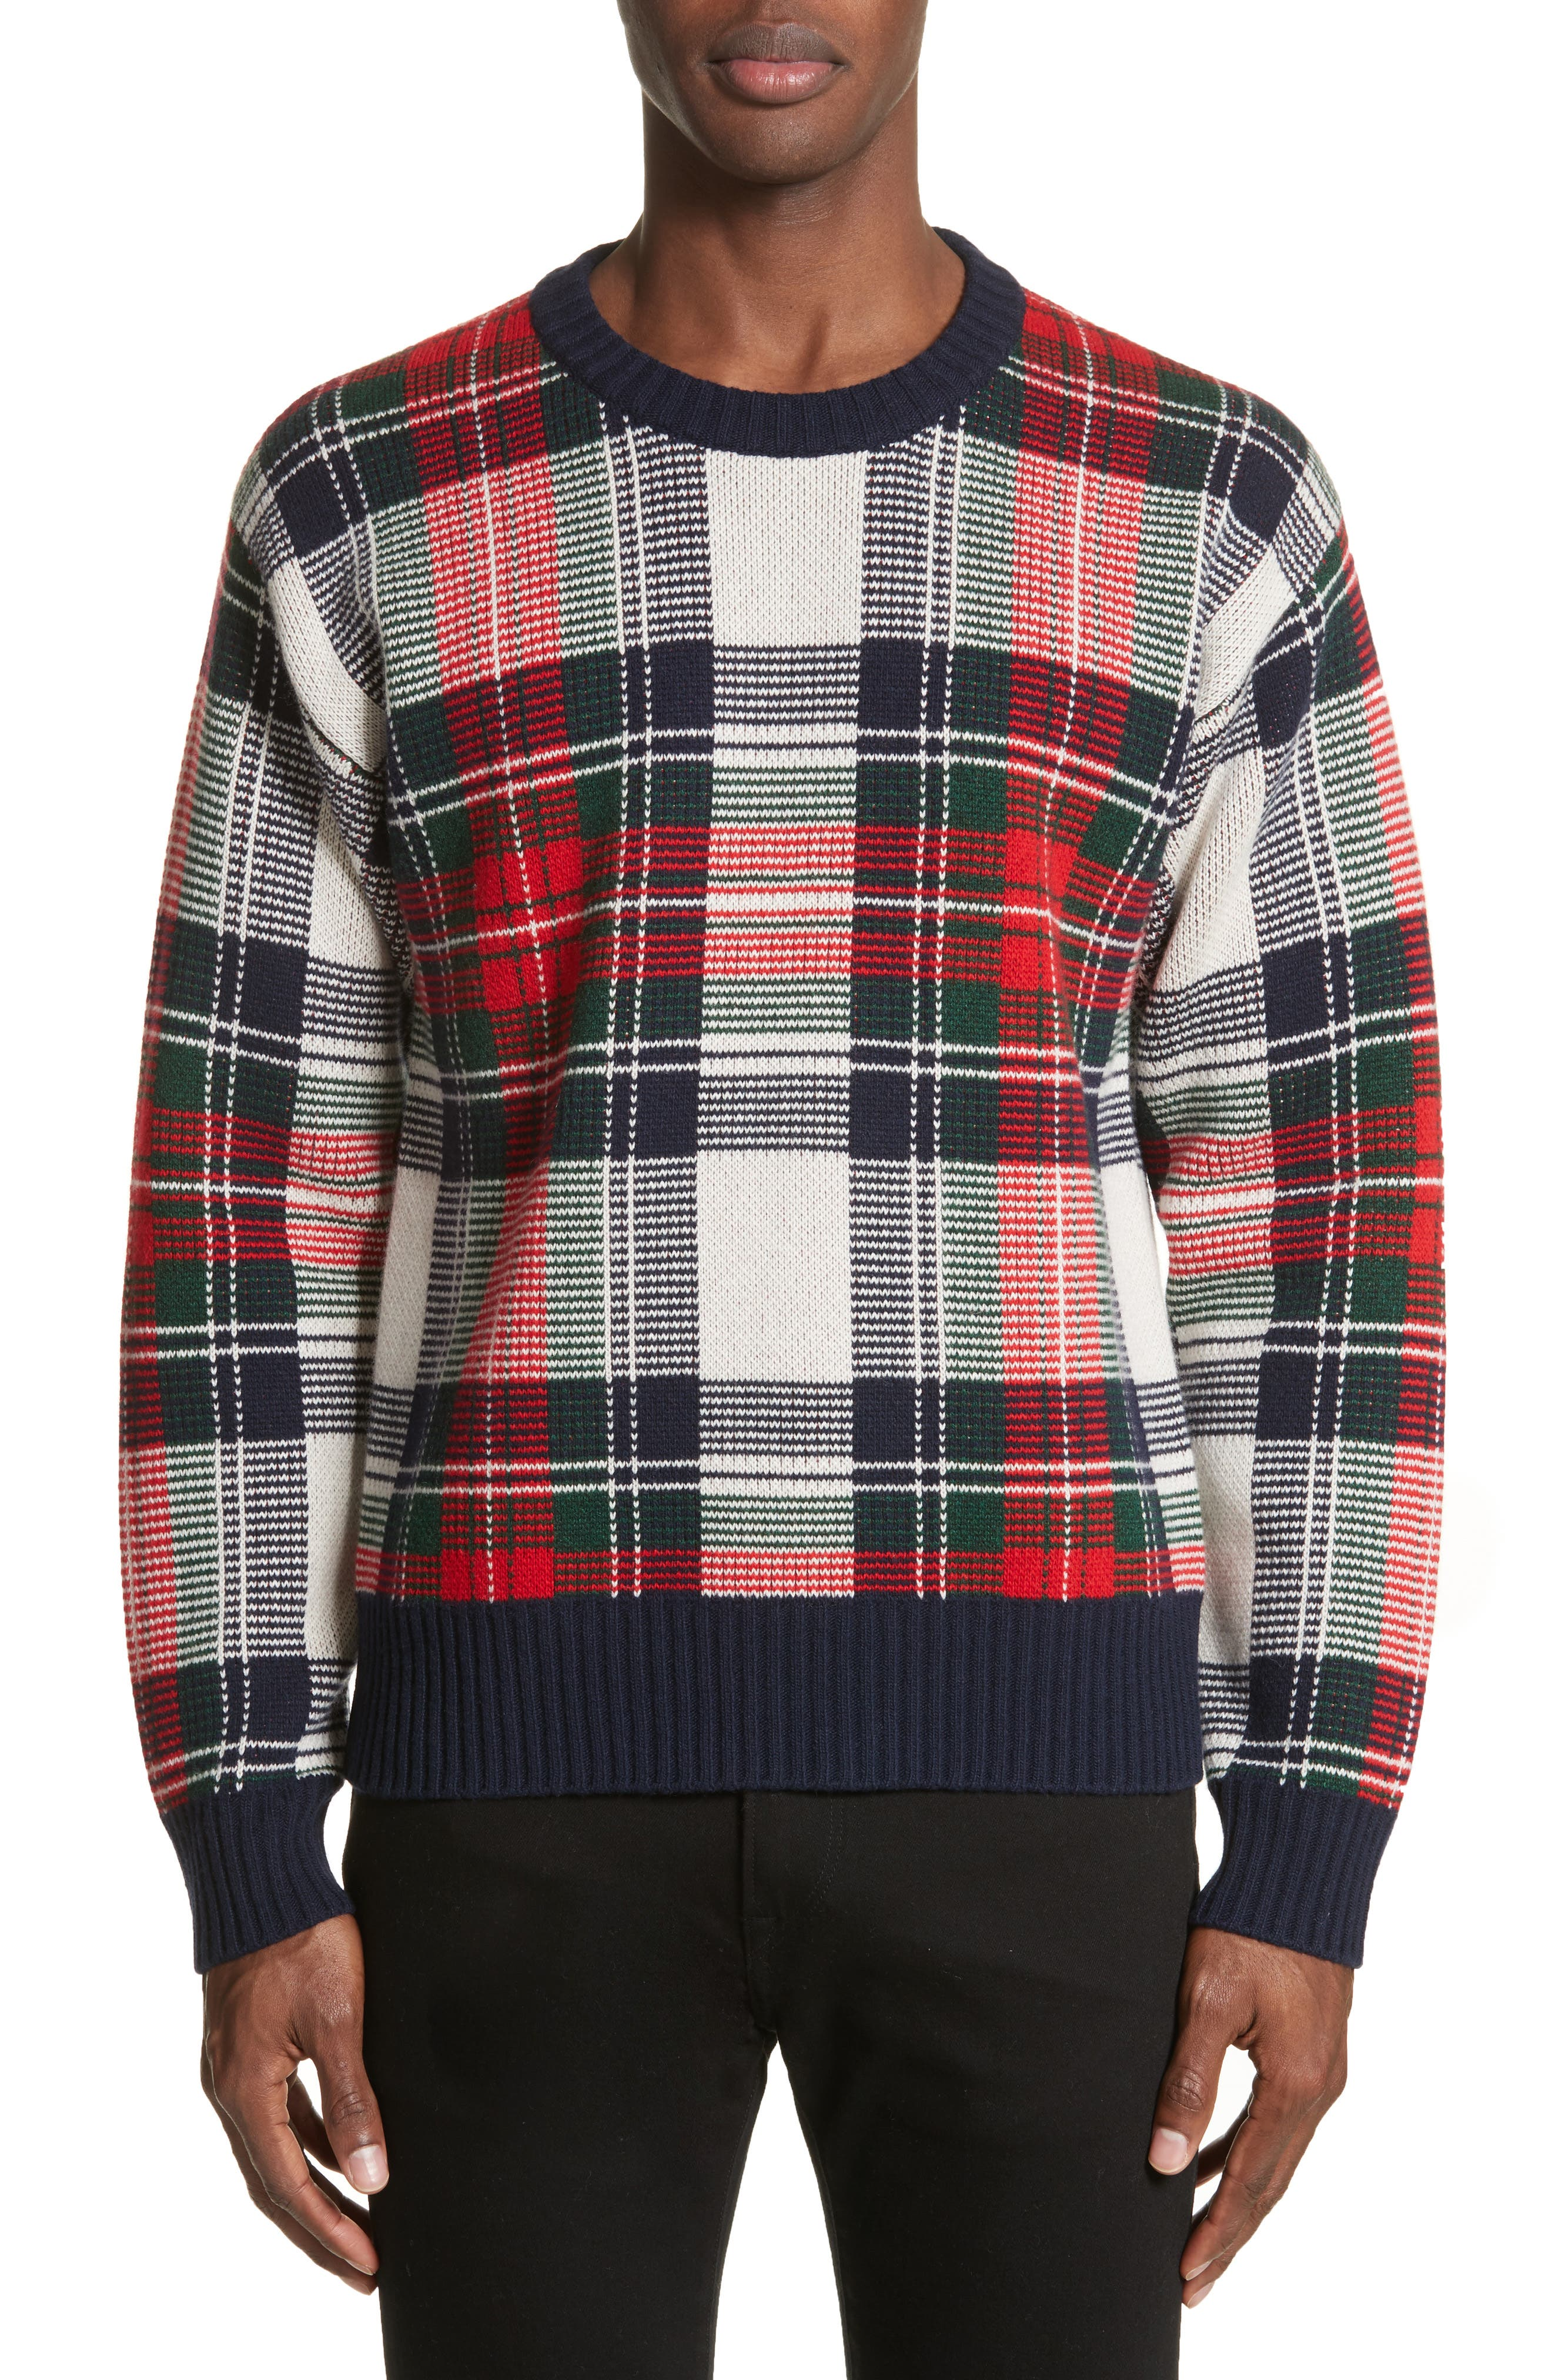 Main Image - Burberry Plaid Cashmere & Wool Sweater